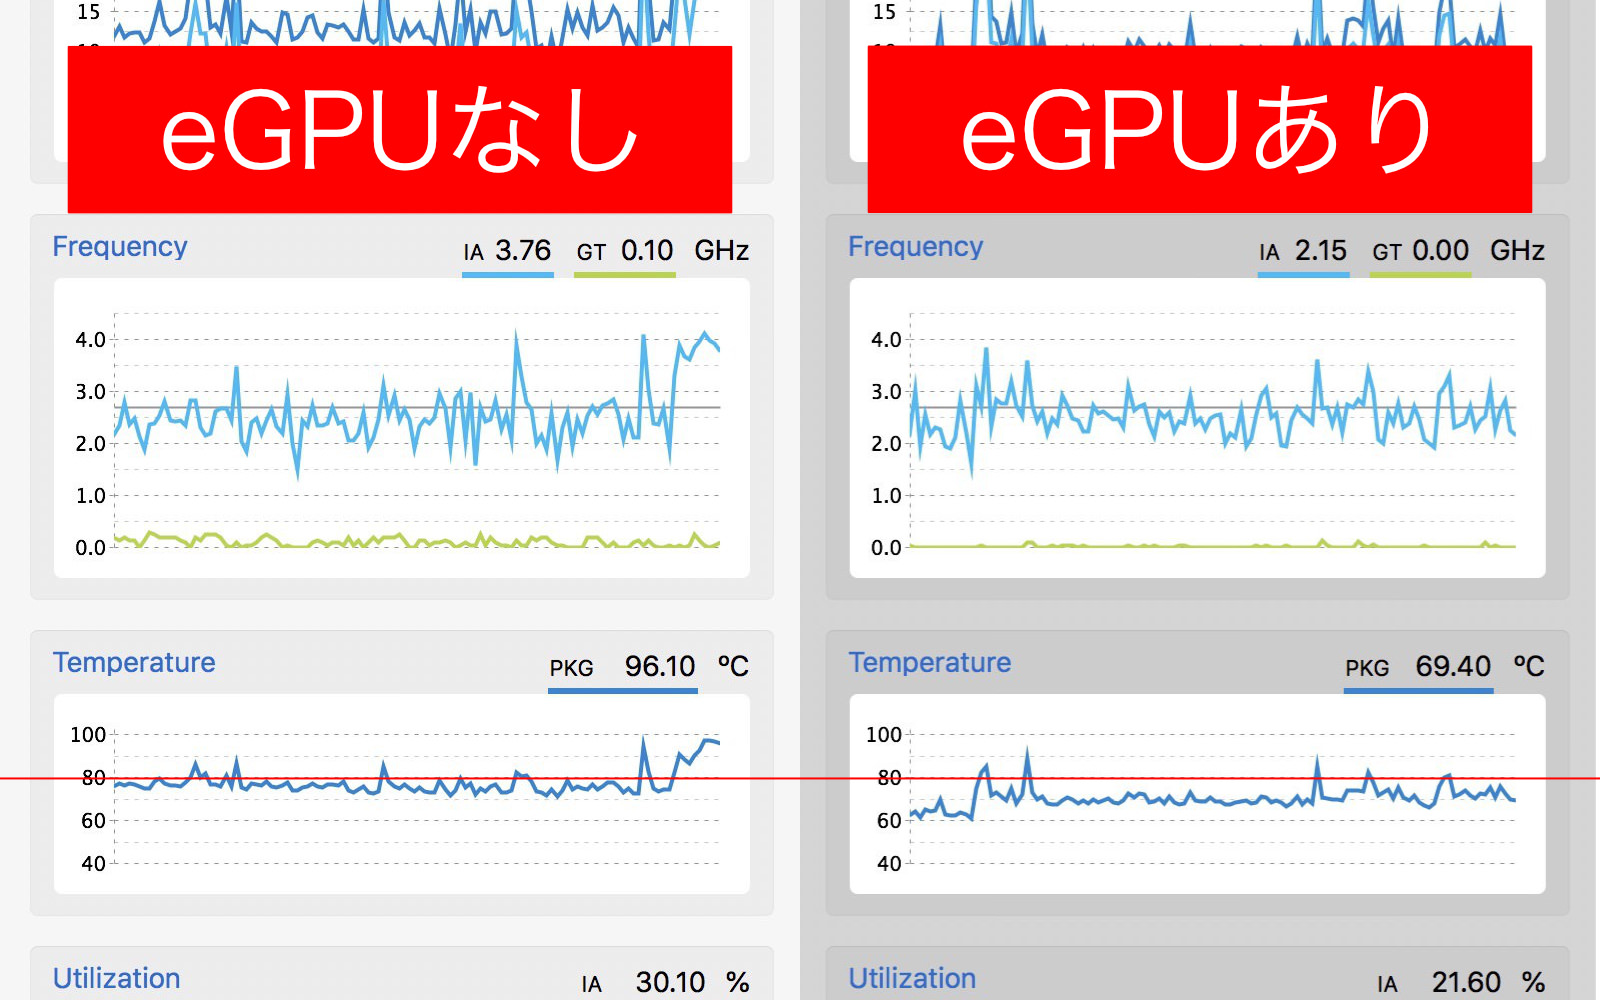 With or without gpu comparison